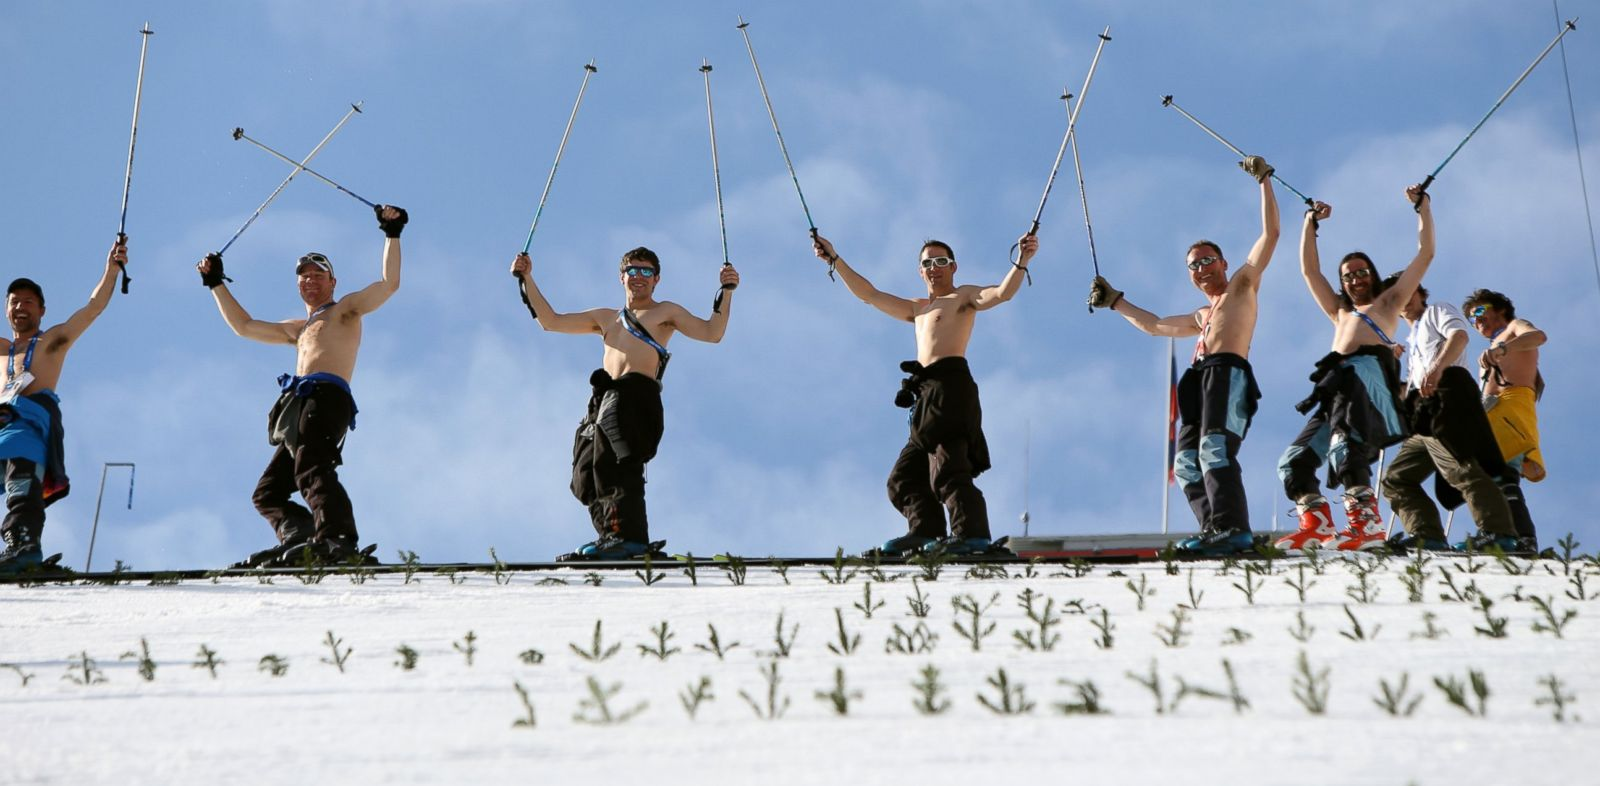 PHOTO:Course workers take off their shirts to enjoy the warm weather as they prepare the landing hill before the mens Nordic combined normal hill training jump at the RusSki Gorki Jump Center at the 2014 Sochi Winter Olympics.